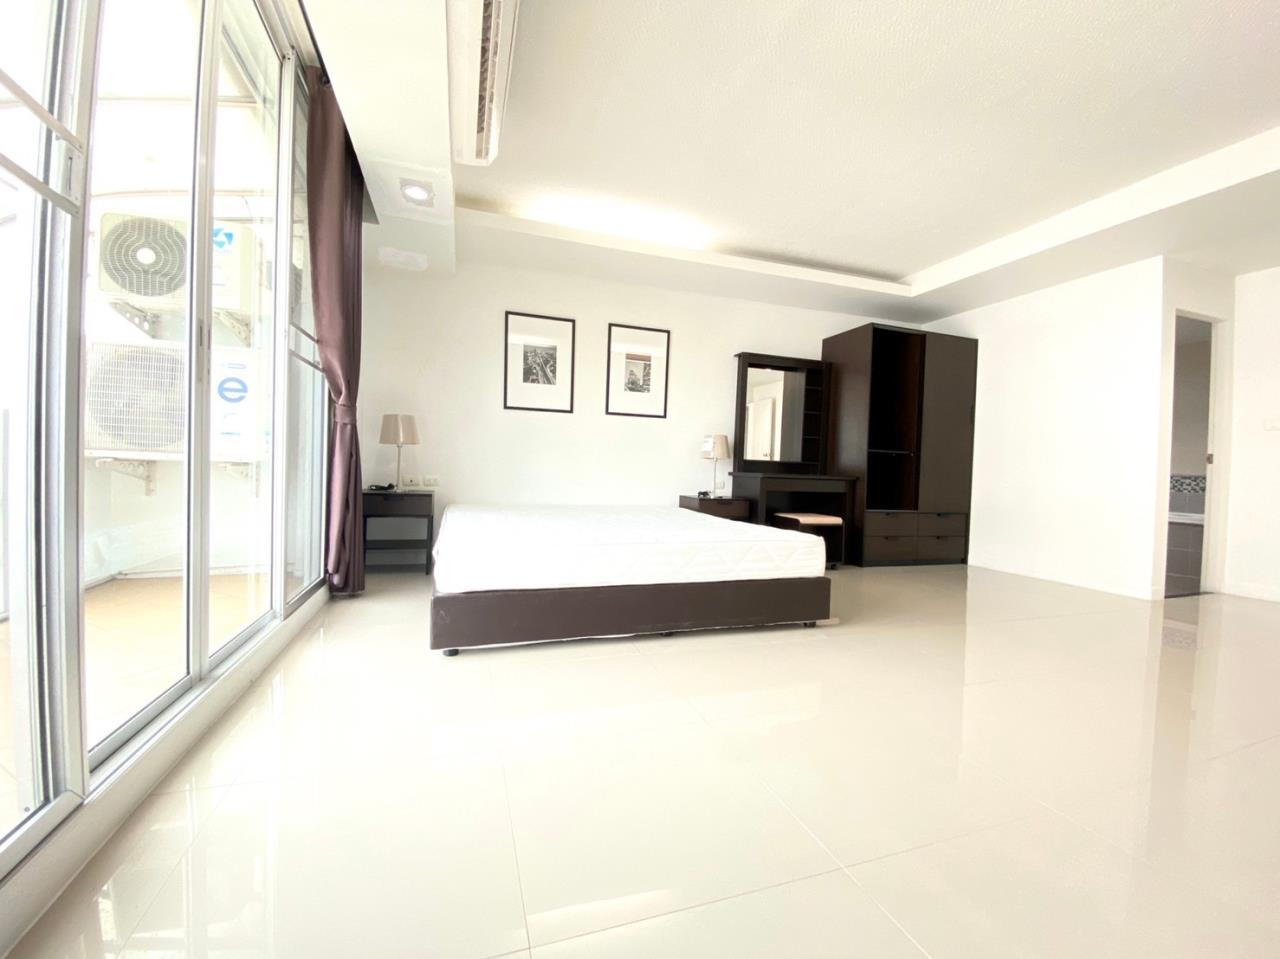 Bestbkkcondos Agency's Waterford 50 2 bedrooms 2 bathrooms 96.8 sqm. 8th Floor for sale 6.582mTHB Rental 28000THB 9